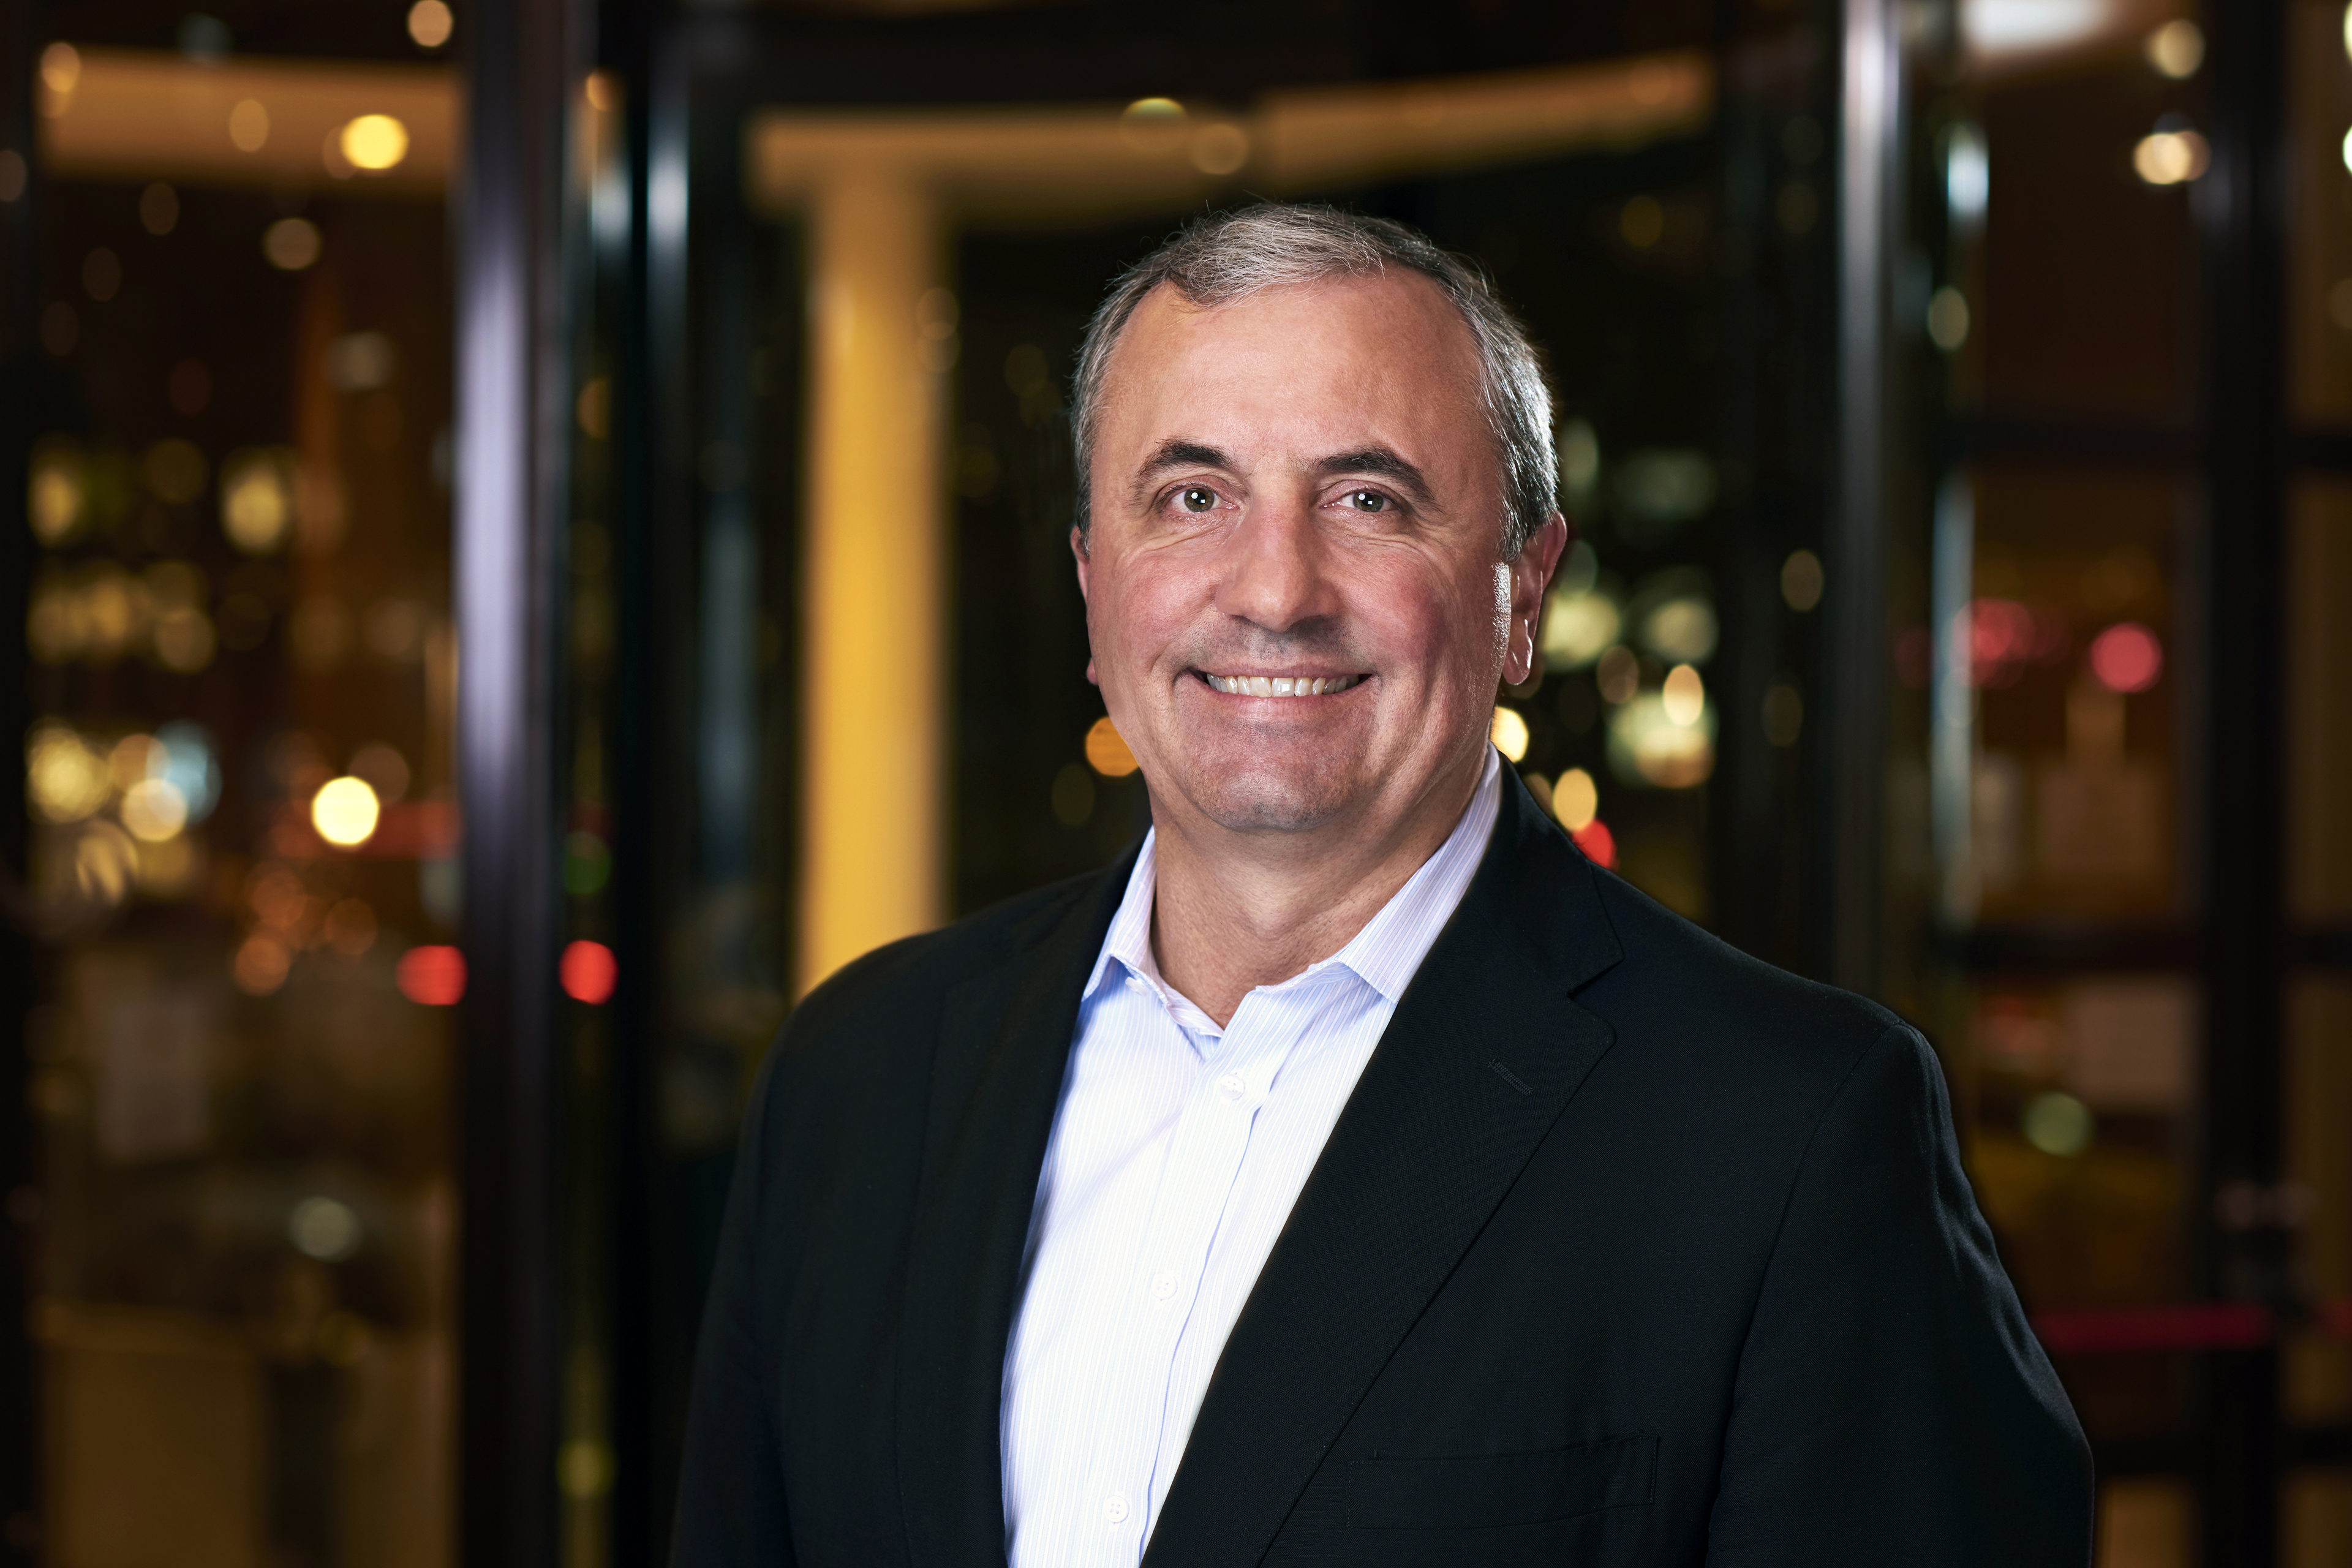 Carmine Di Sibio elected as next EY Global Chairman and CEO